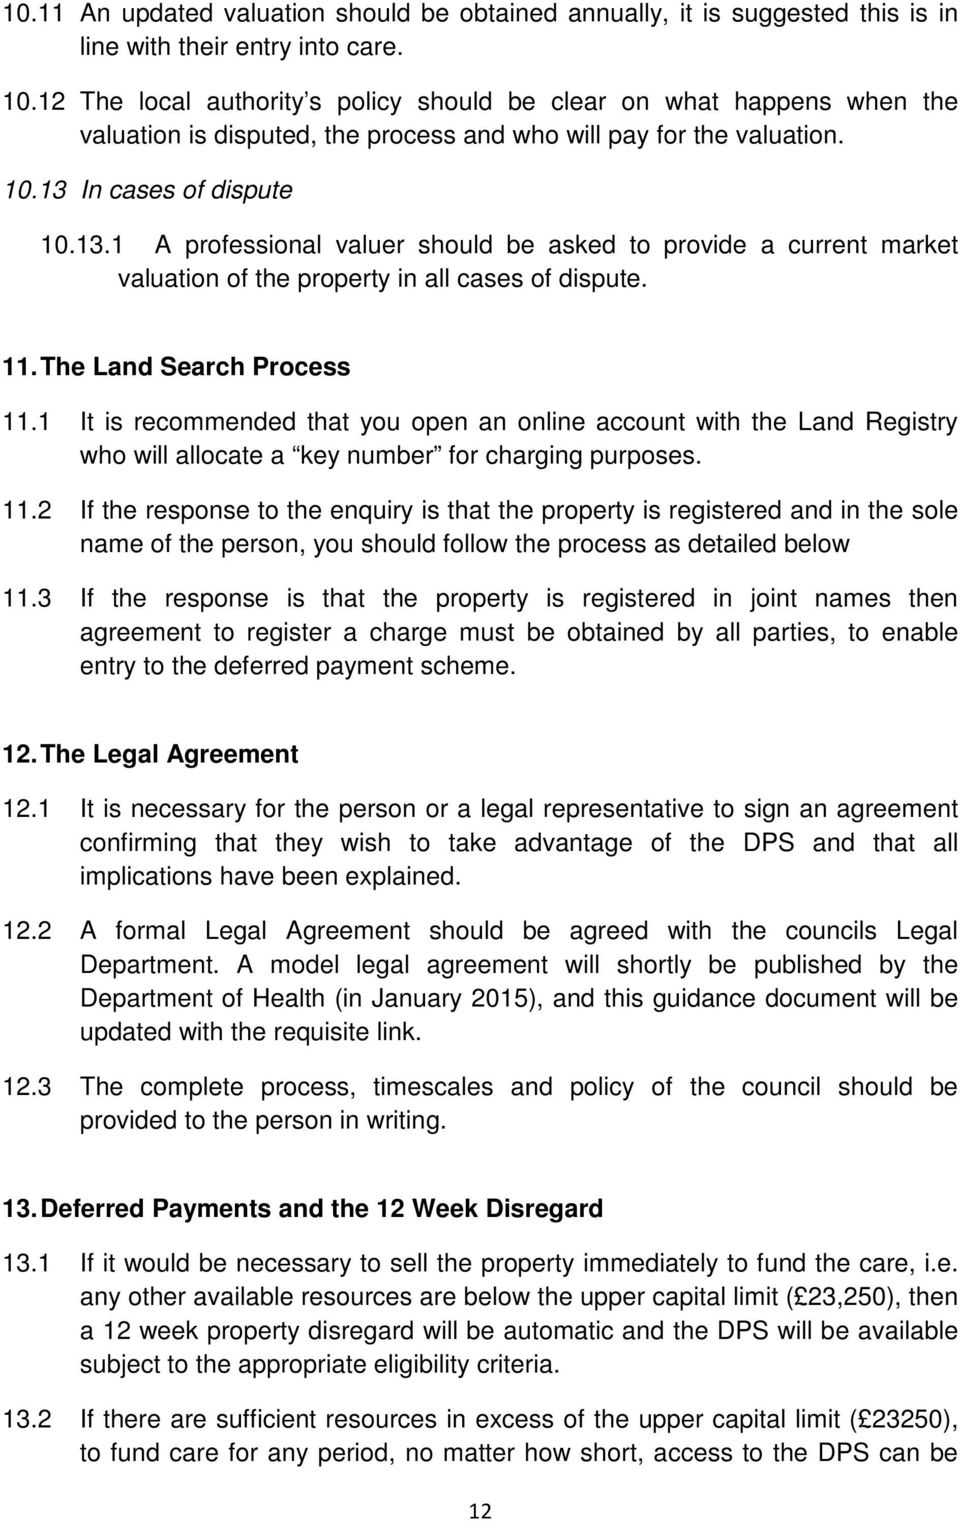 In cases of dispute 10.13.1 A professional valuer should be asked to provide a current market valuation of the property in all cases of dispute. 11. The Land Search Process 11.